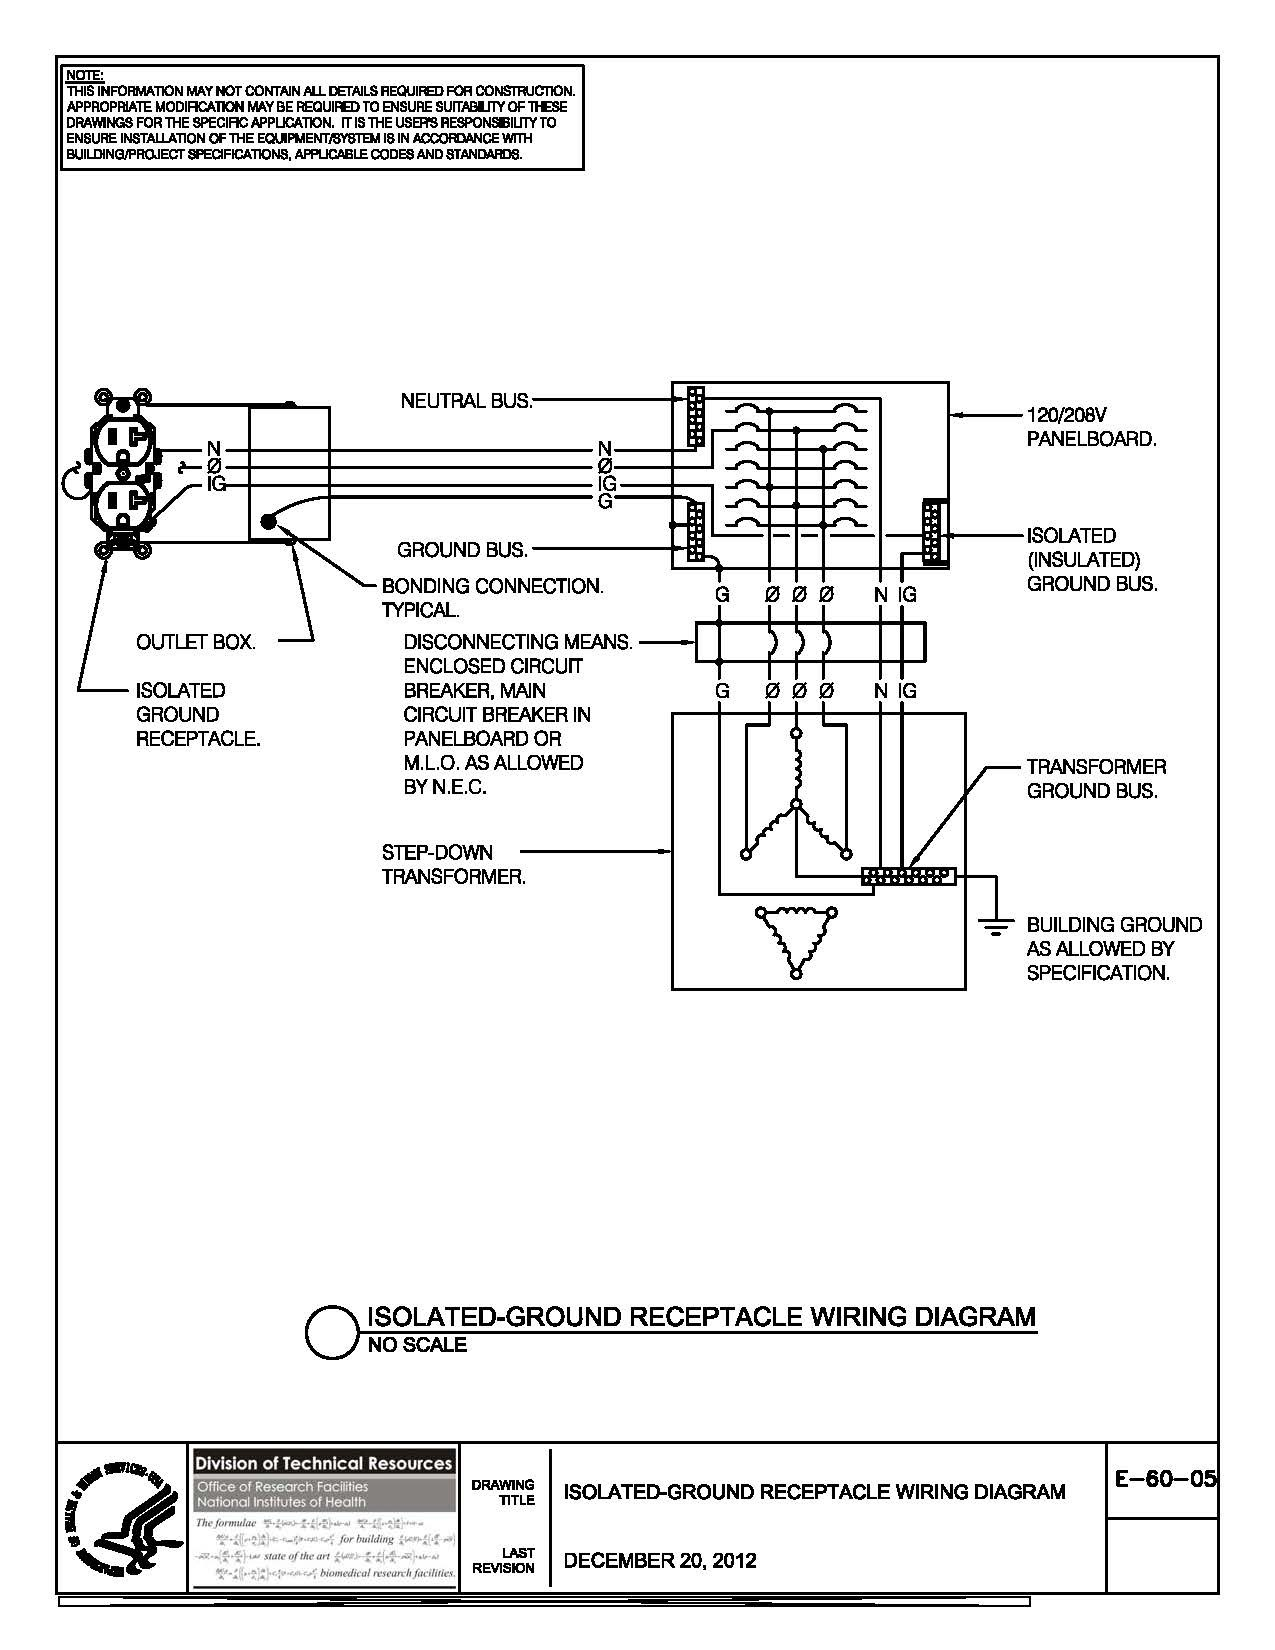 rtu wiring diagrams luxaire rtu wiring diagrams modbus rtu wiring diagram sample